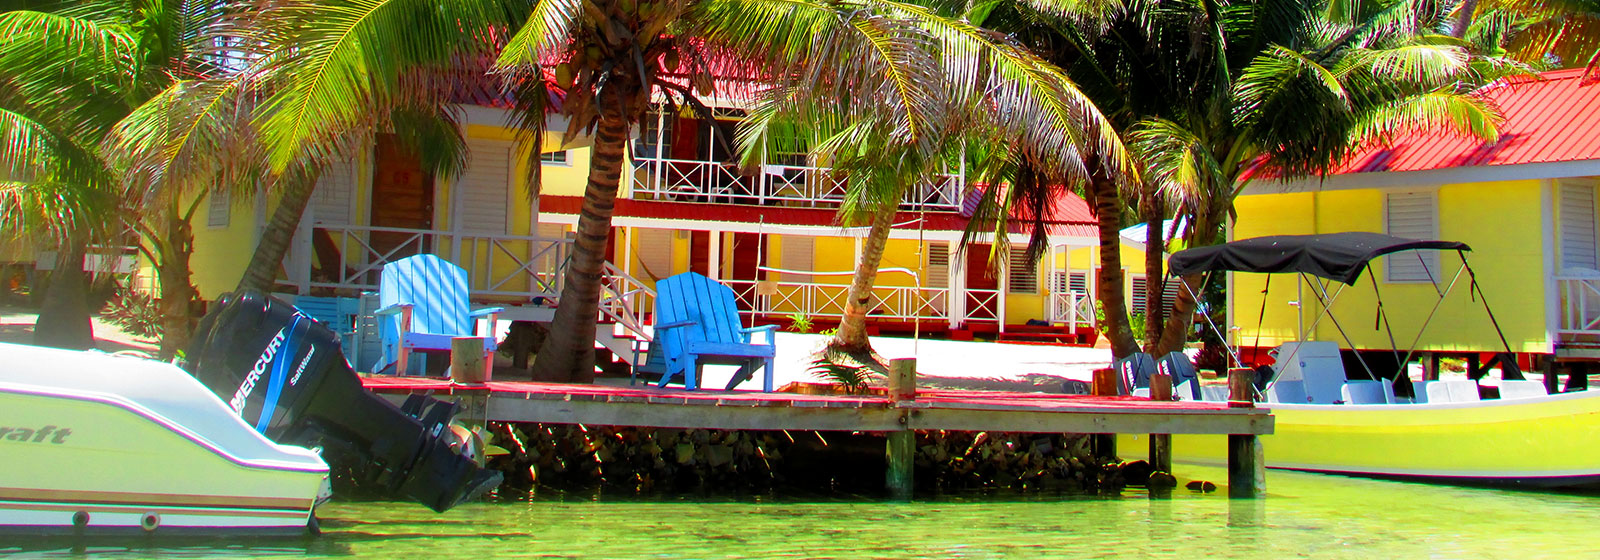 Tobacco Caye Joe Jo's Dock